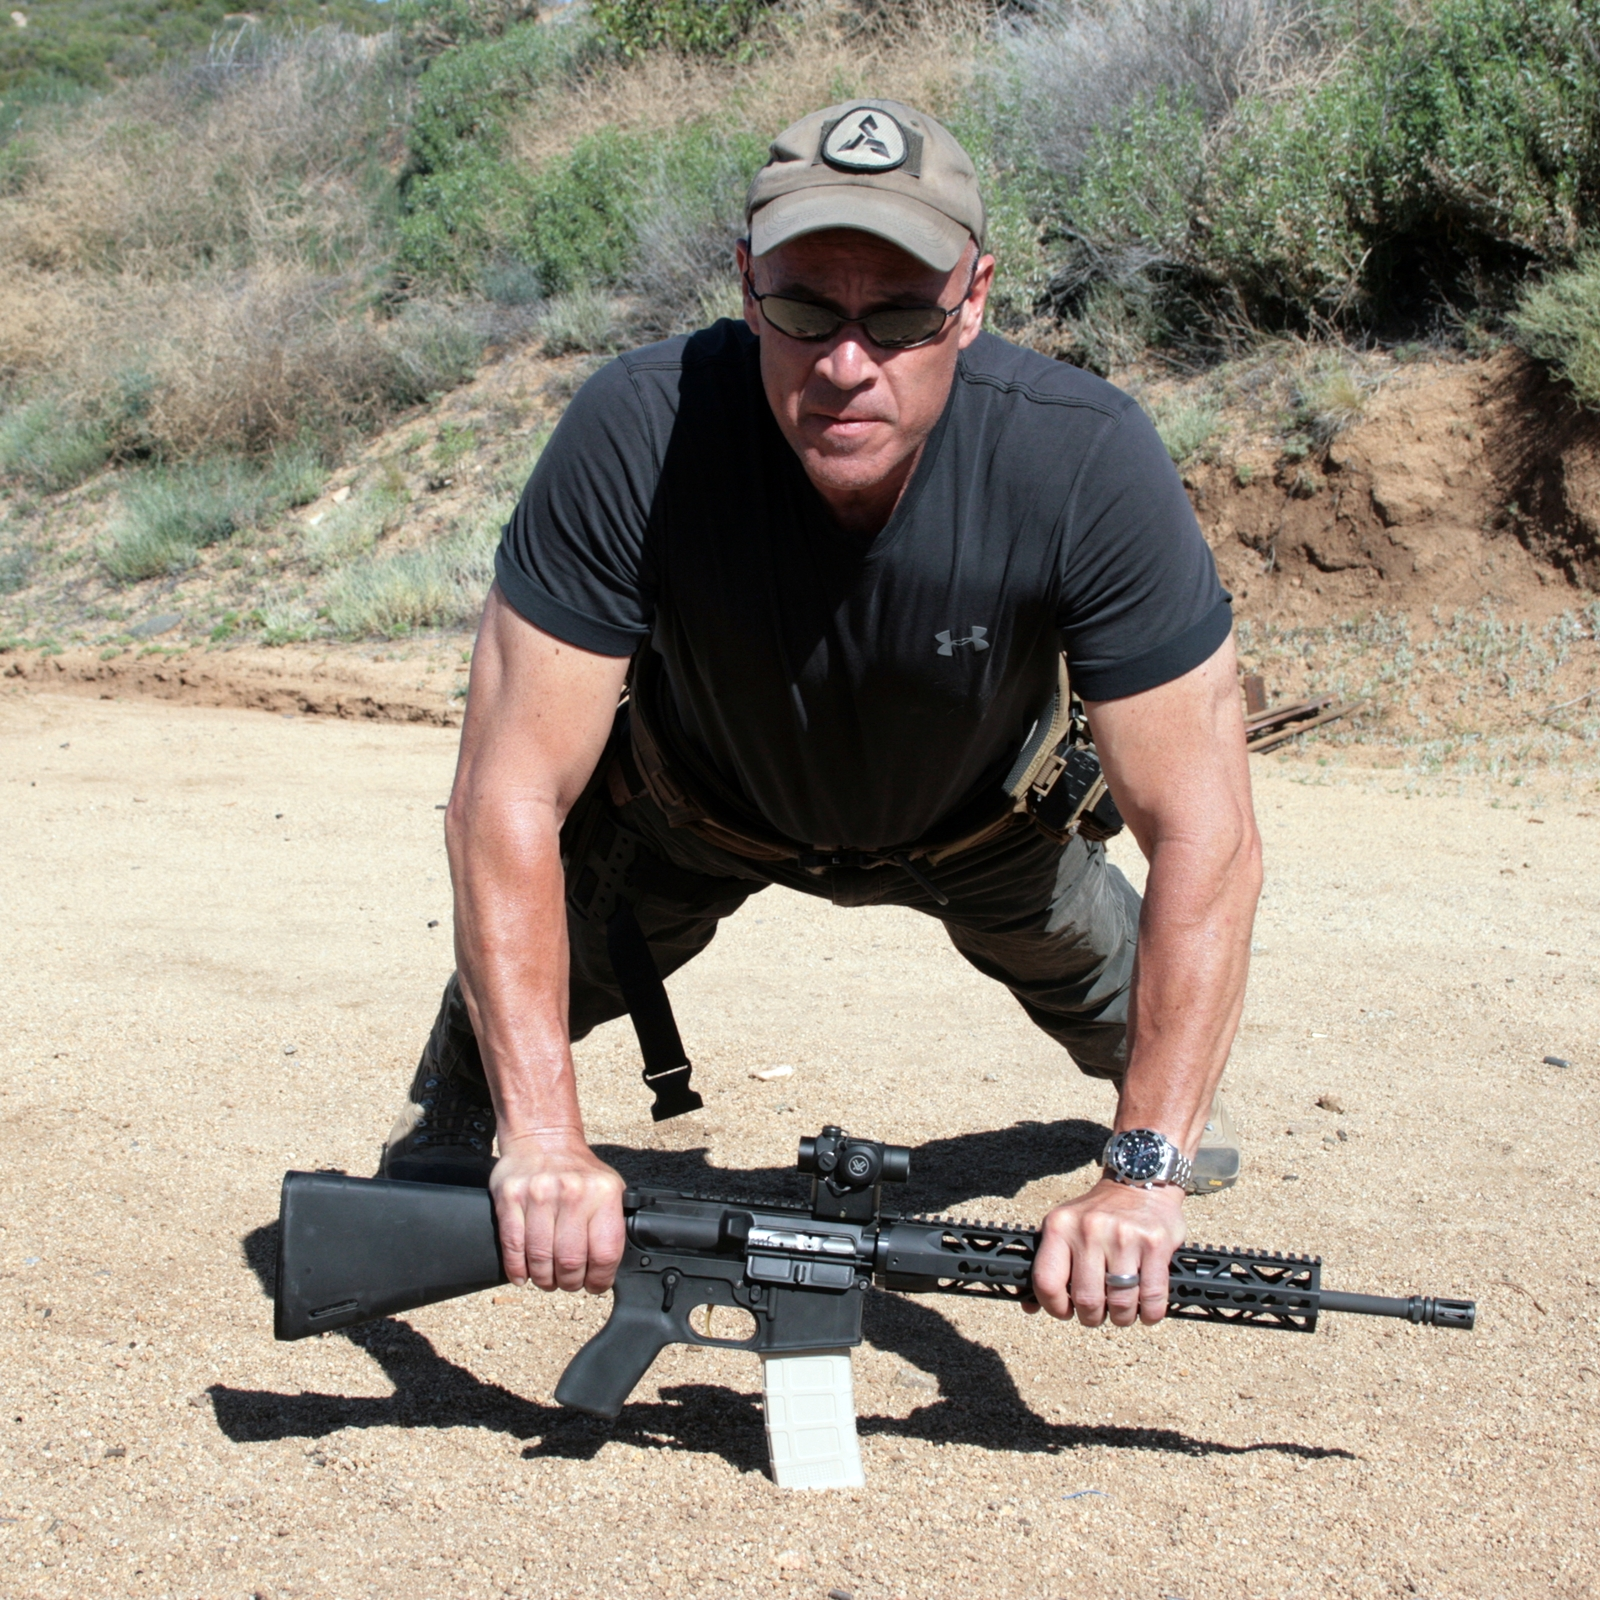 SinistralRifleman | Competition, Training, Gear | Page 20